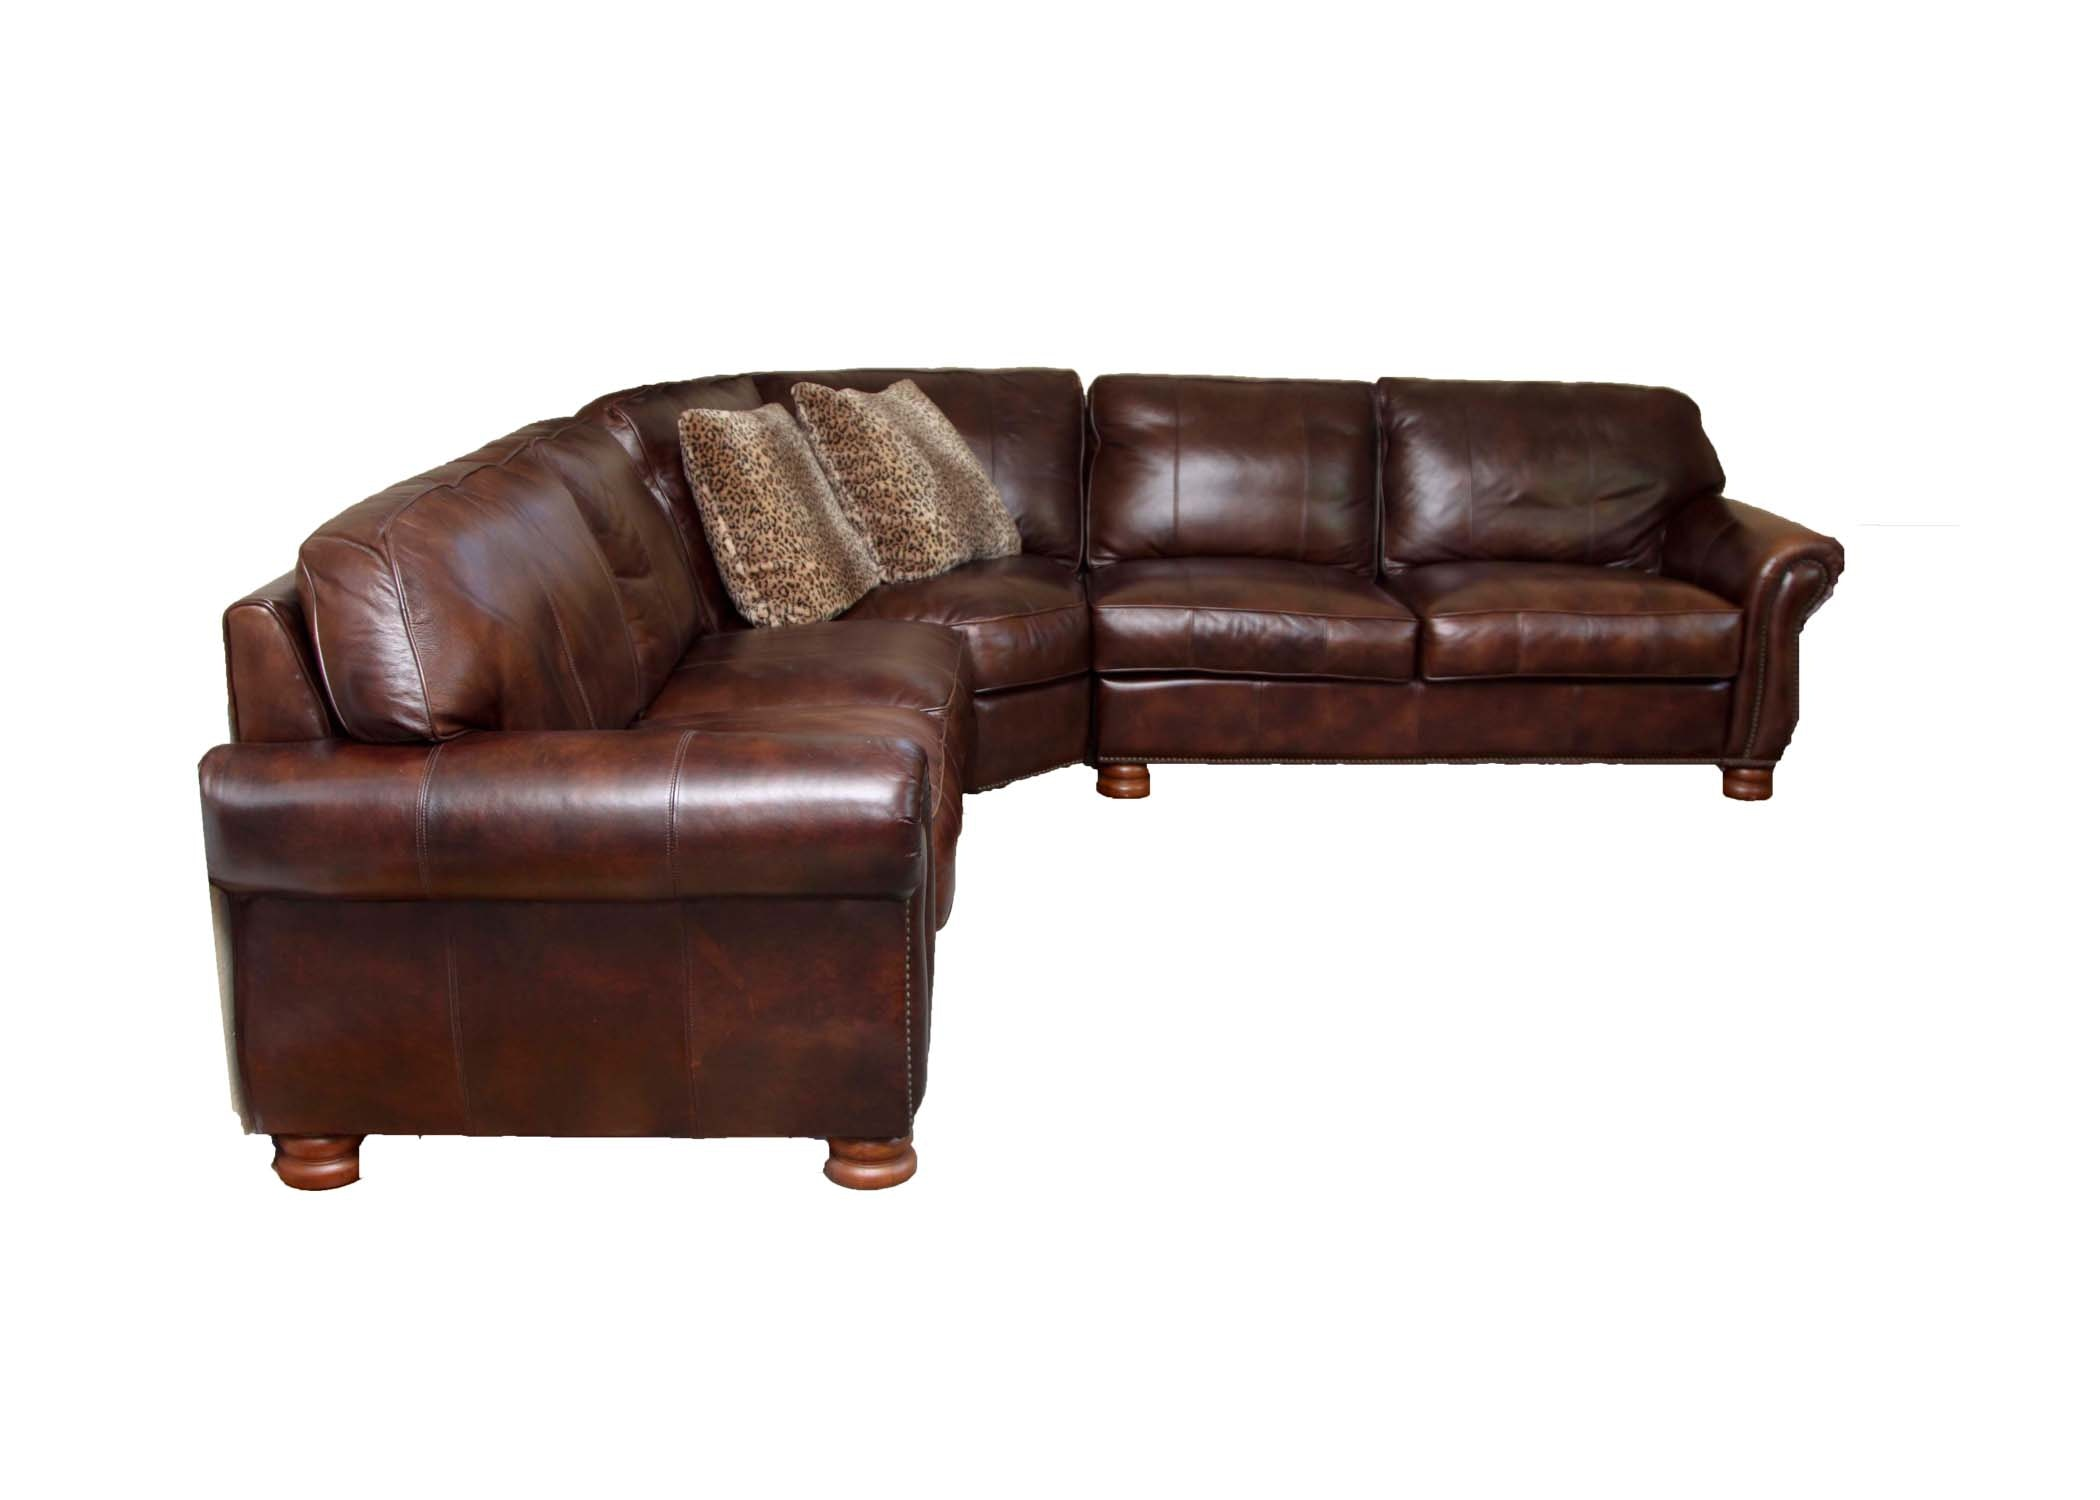 Thomasville Brown Leather Sectional Sofa EBTH